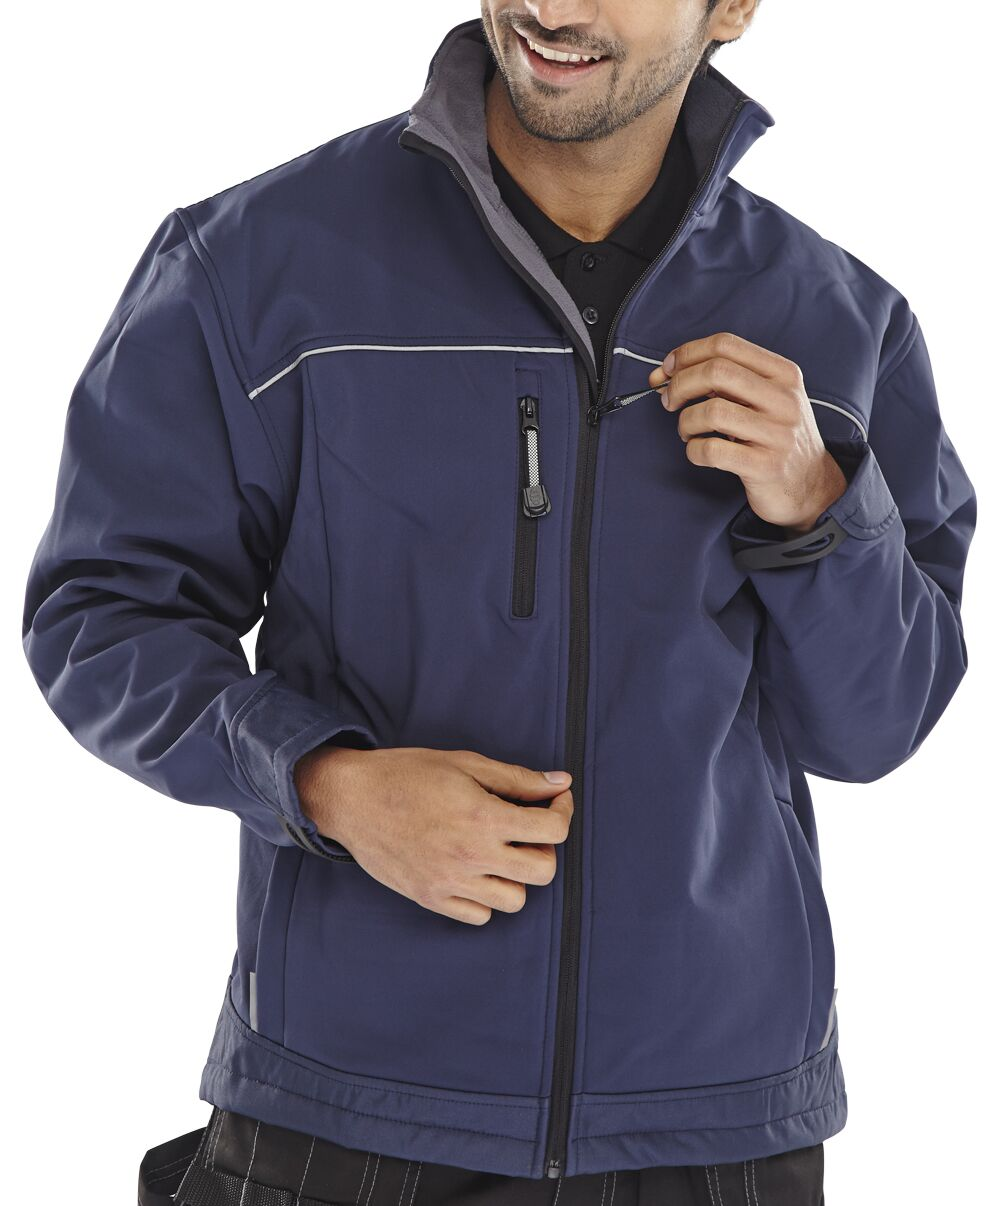 Soft Shell Click Workwear Soft Shell Jacket Water Resistant Windproof 3XL Navy Ref SSJNXXXL *Approx 3 Day Leadtime*